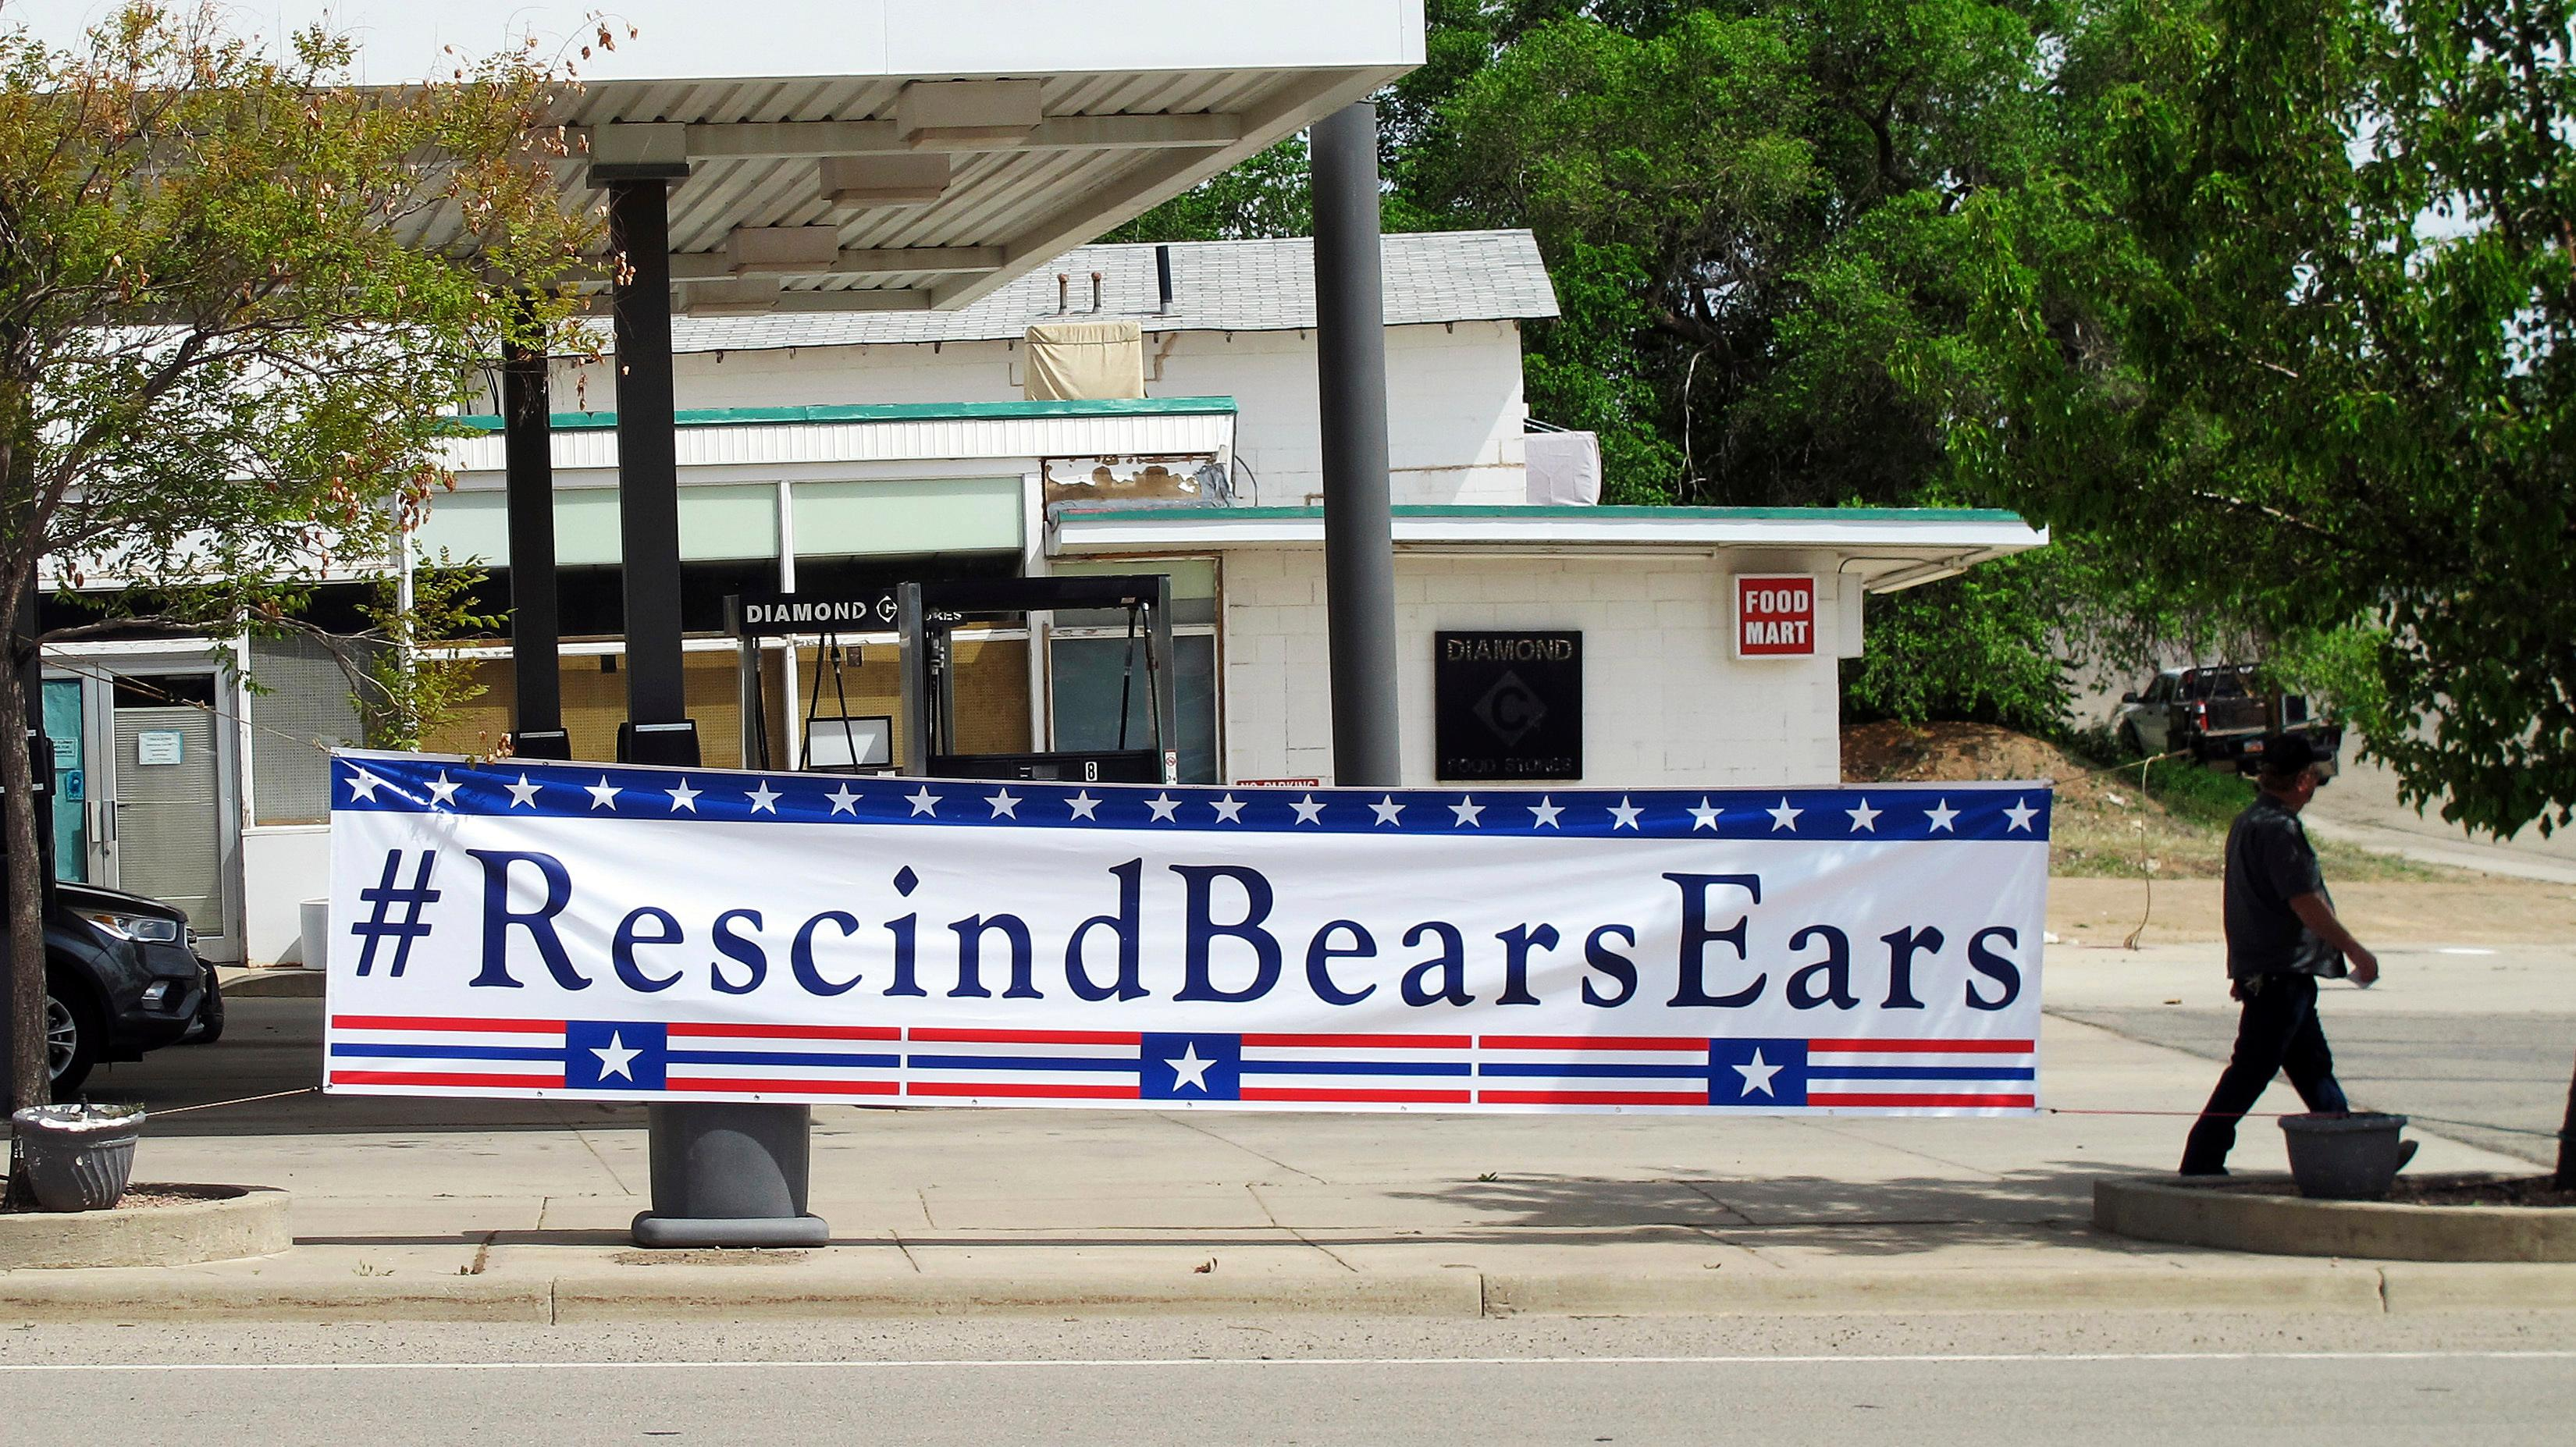 A banner sign hangs in Blanding, Utah, Monday, May 8, 2017. U.S. Interior Secretary Ryan Zinke Zinke flew Monday morning, May 8, 2017, from Salt Lake City to Blanding, Utah, where he took a helicopter tour along with Utah Gov. Gary Herbert to see Bears Ears National Monument on lands considered sacred to a coalition of five tribes. (AP Photo/Michelle Price)